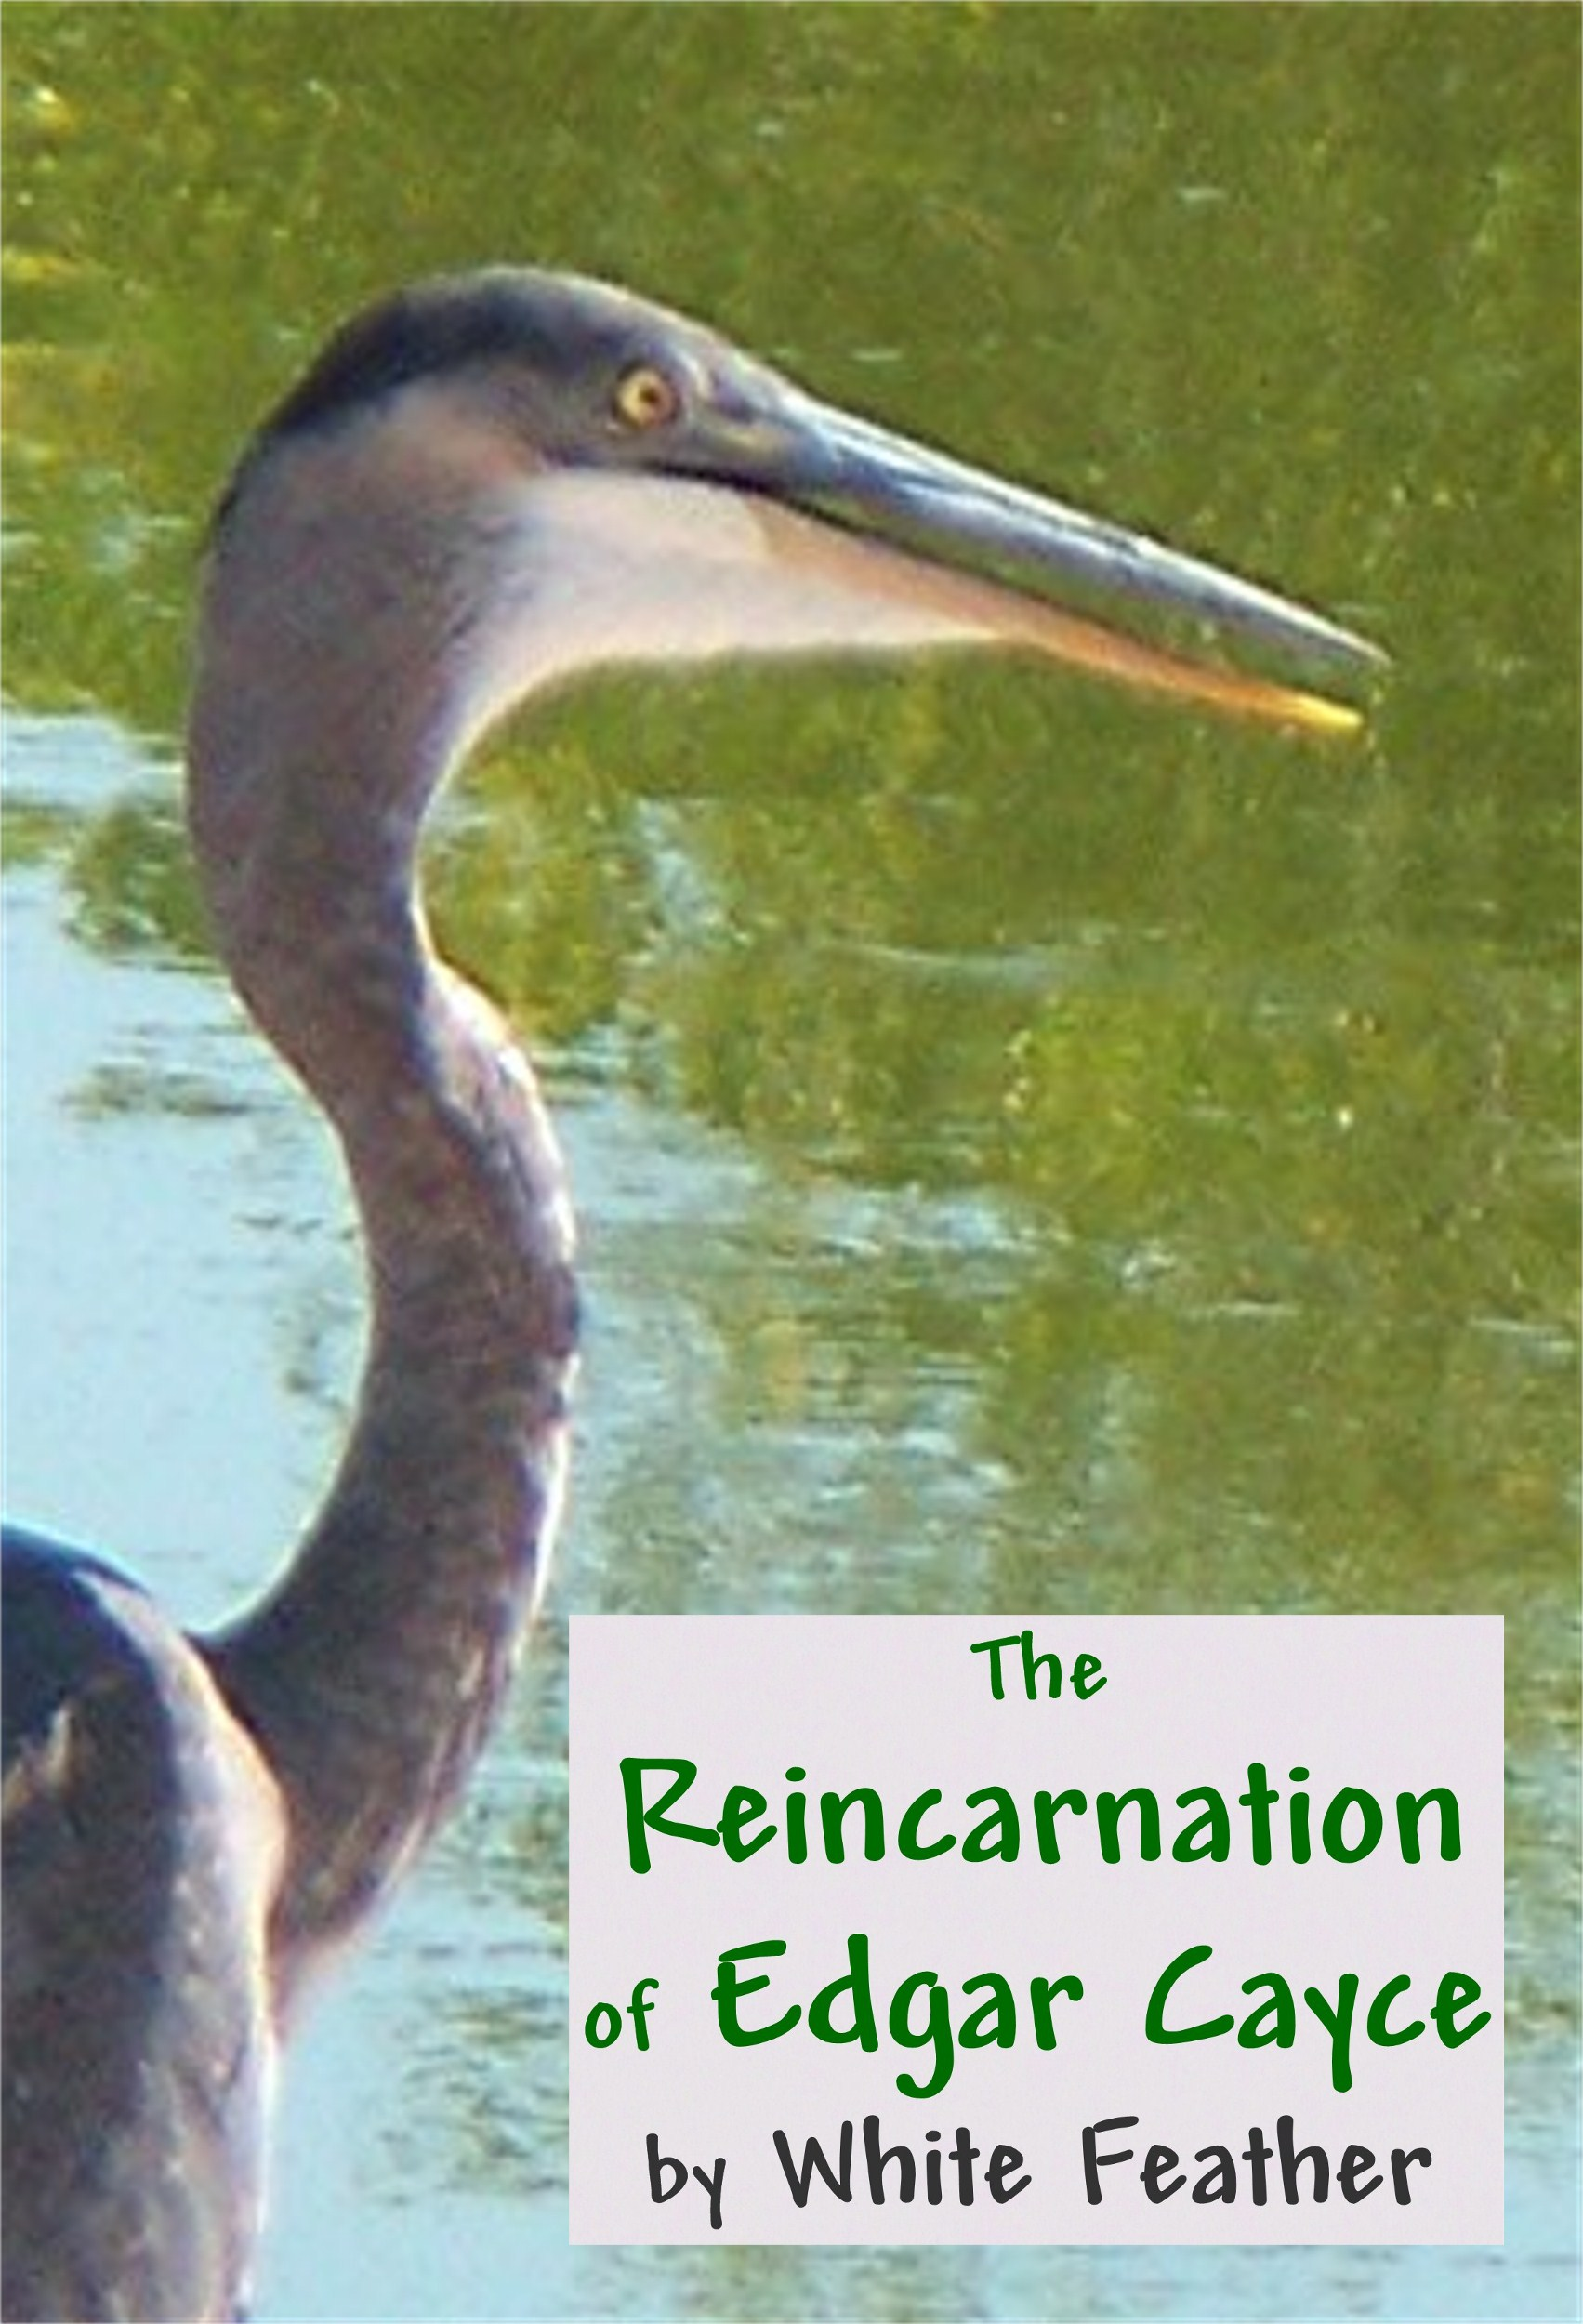 The Reincarnation of Edgar Cayce, an Ebook by White Feather